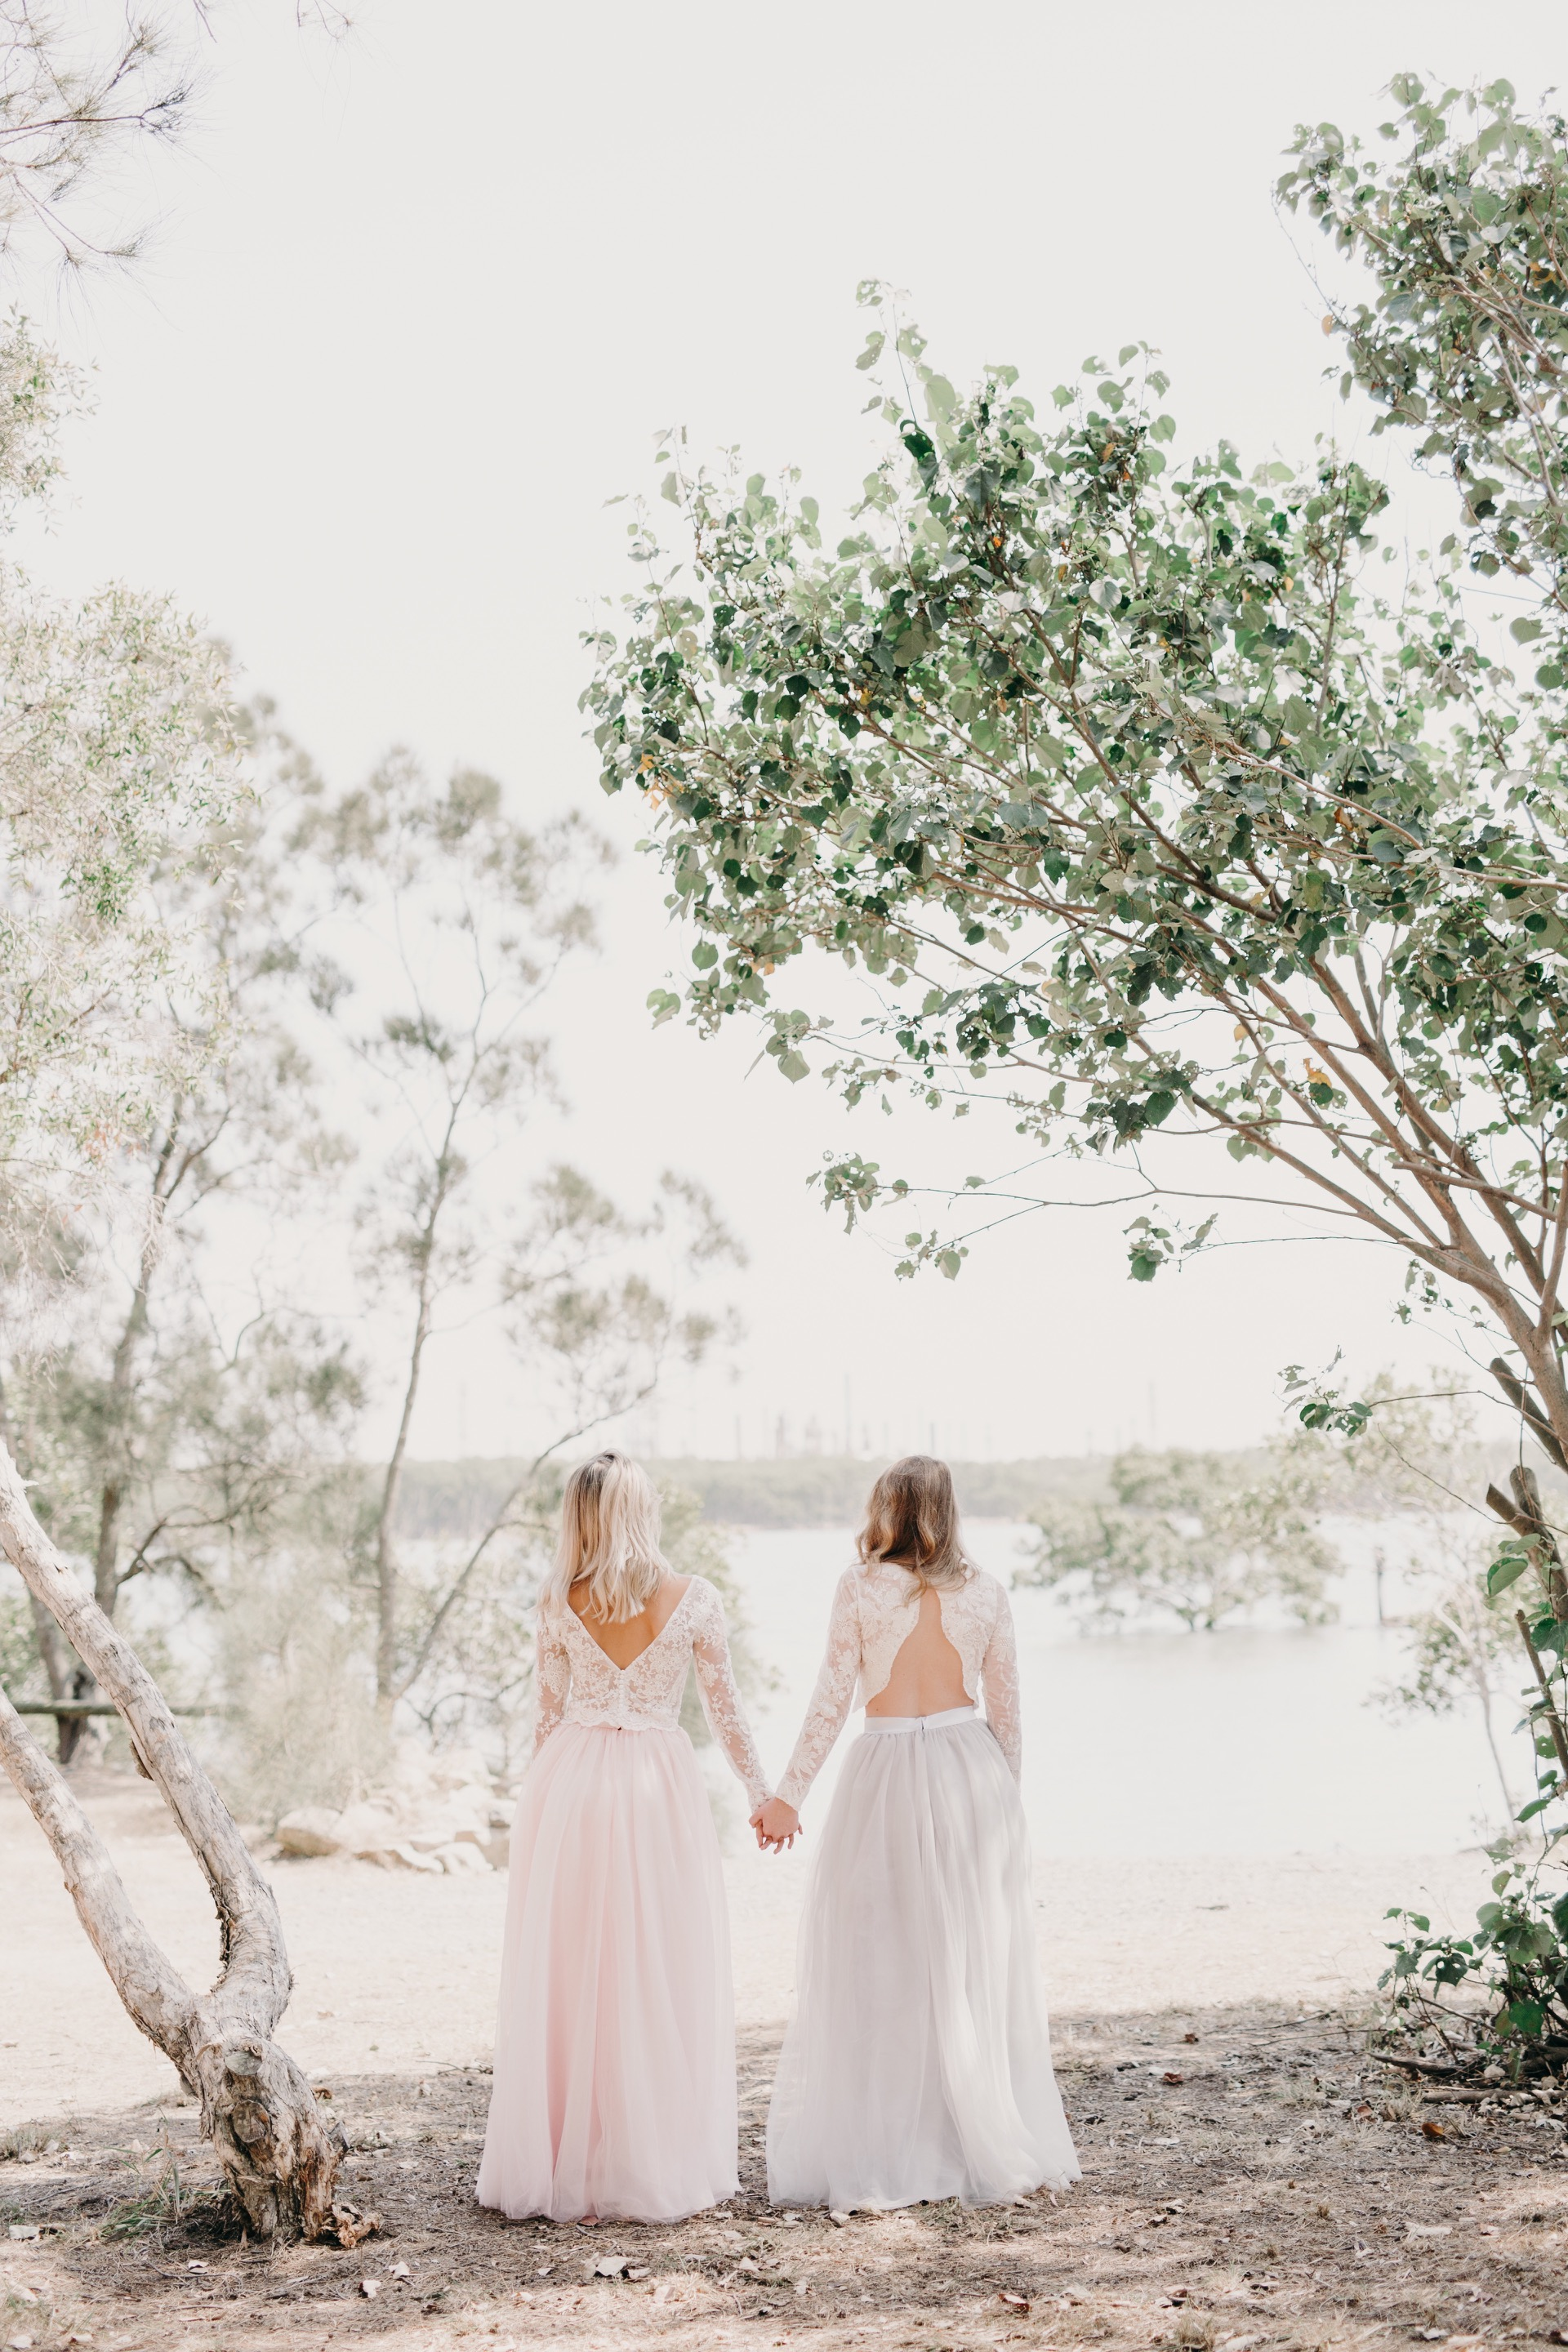 Goddess by Nature, Dreamy Designer Wedding Dresses For The Modern Bride for Destination Wedding Blog, Adriana Weddings. Photography by Twig and Fawn Photography